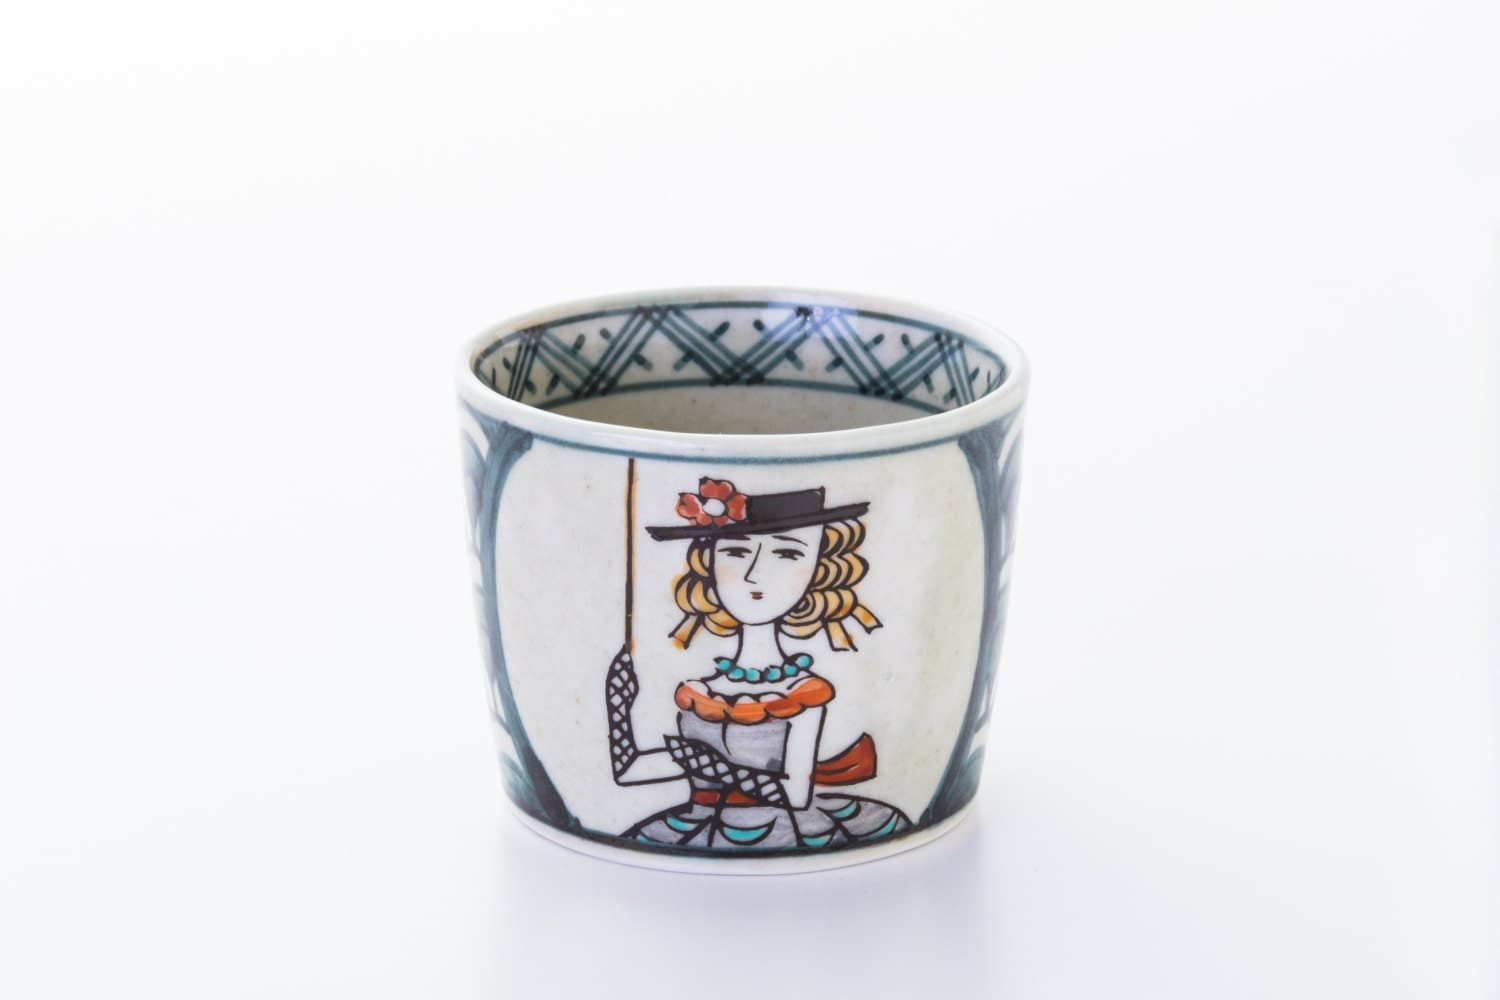 ARITA-YAKI Jiki Japanese traditional Porcelain Tea Cup made in JAPAN - MOTTOJAPAN